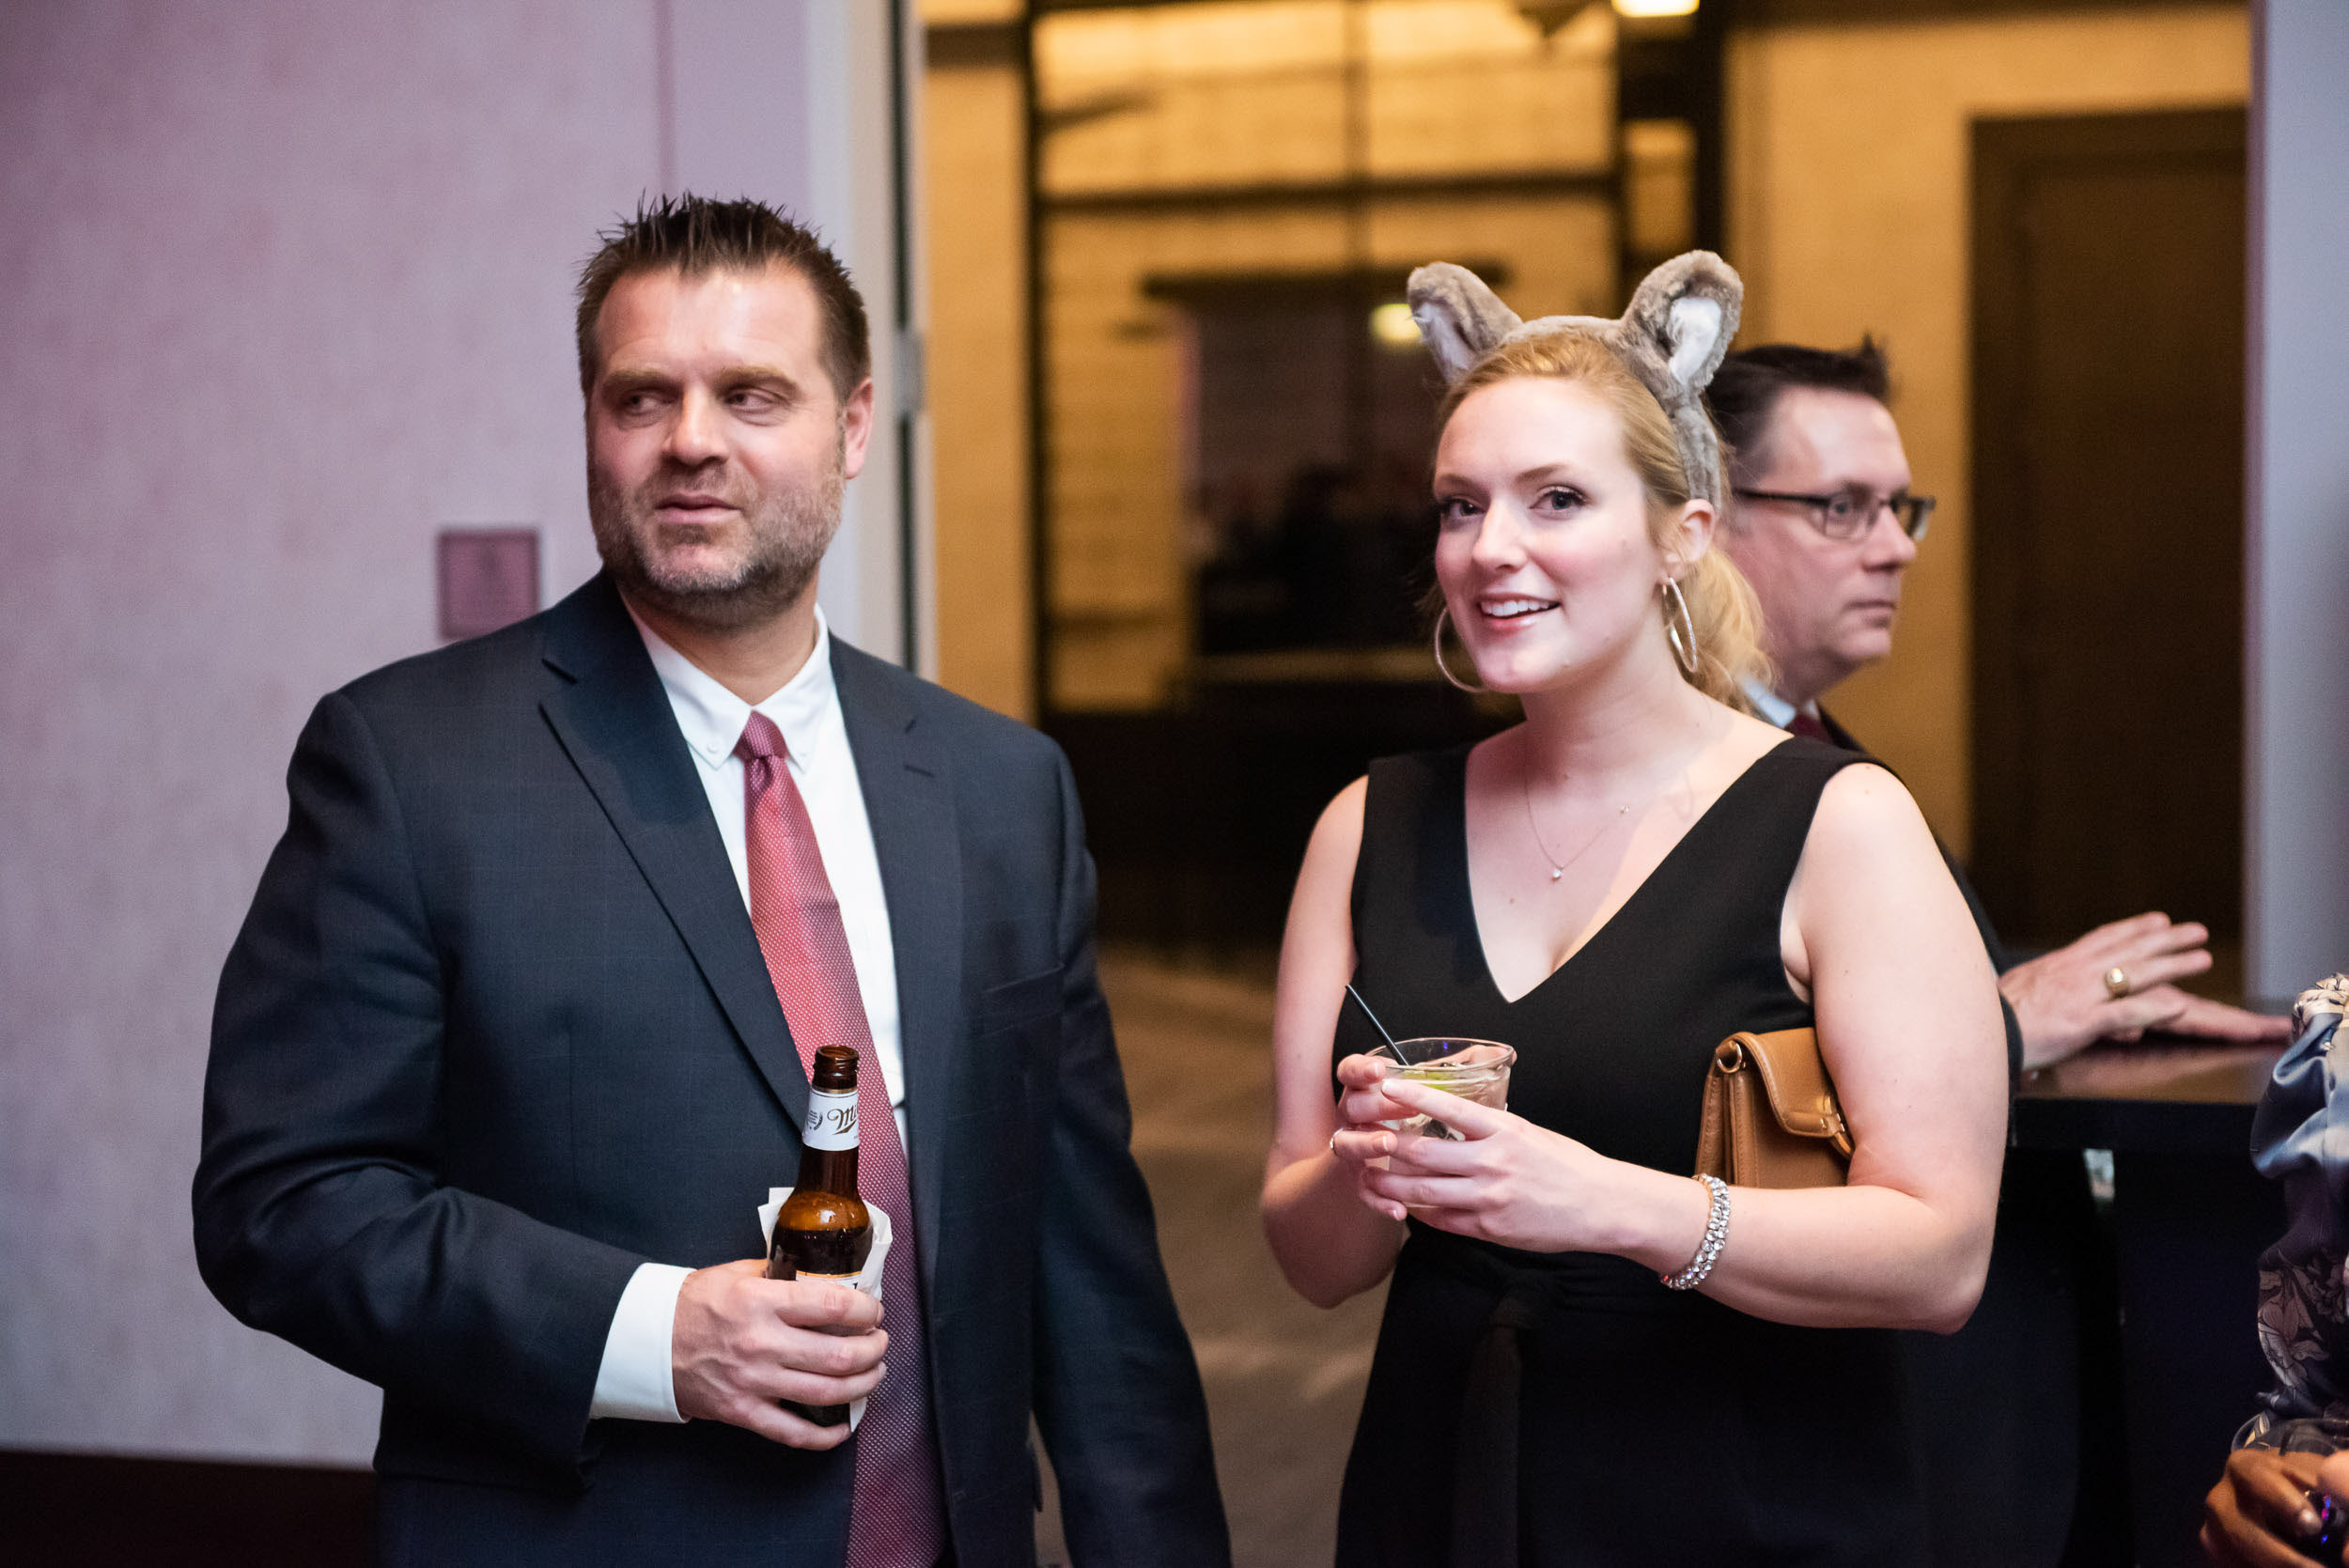 2019 National Sales and Marketing Meeting - mark campbell photography-257_Resized_Resized.jpg